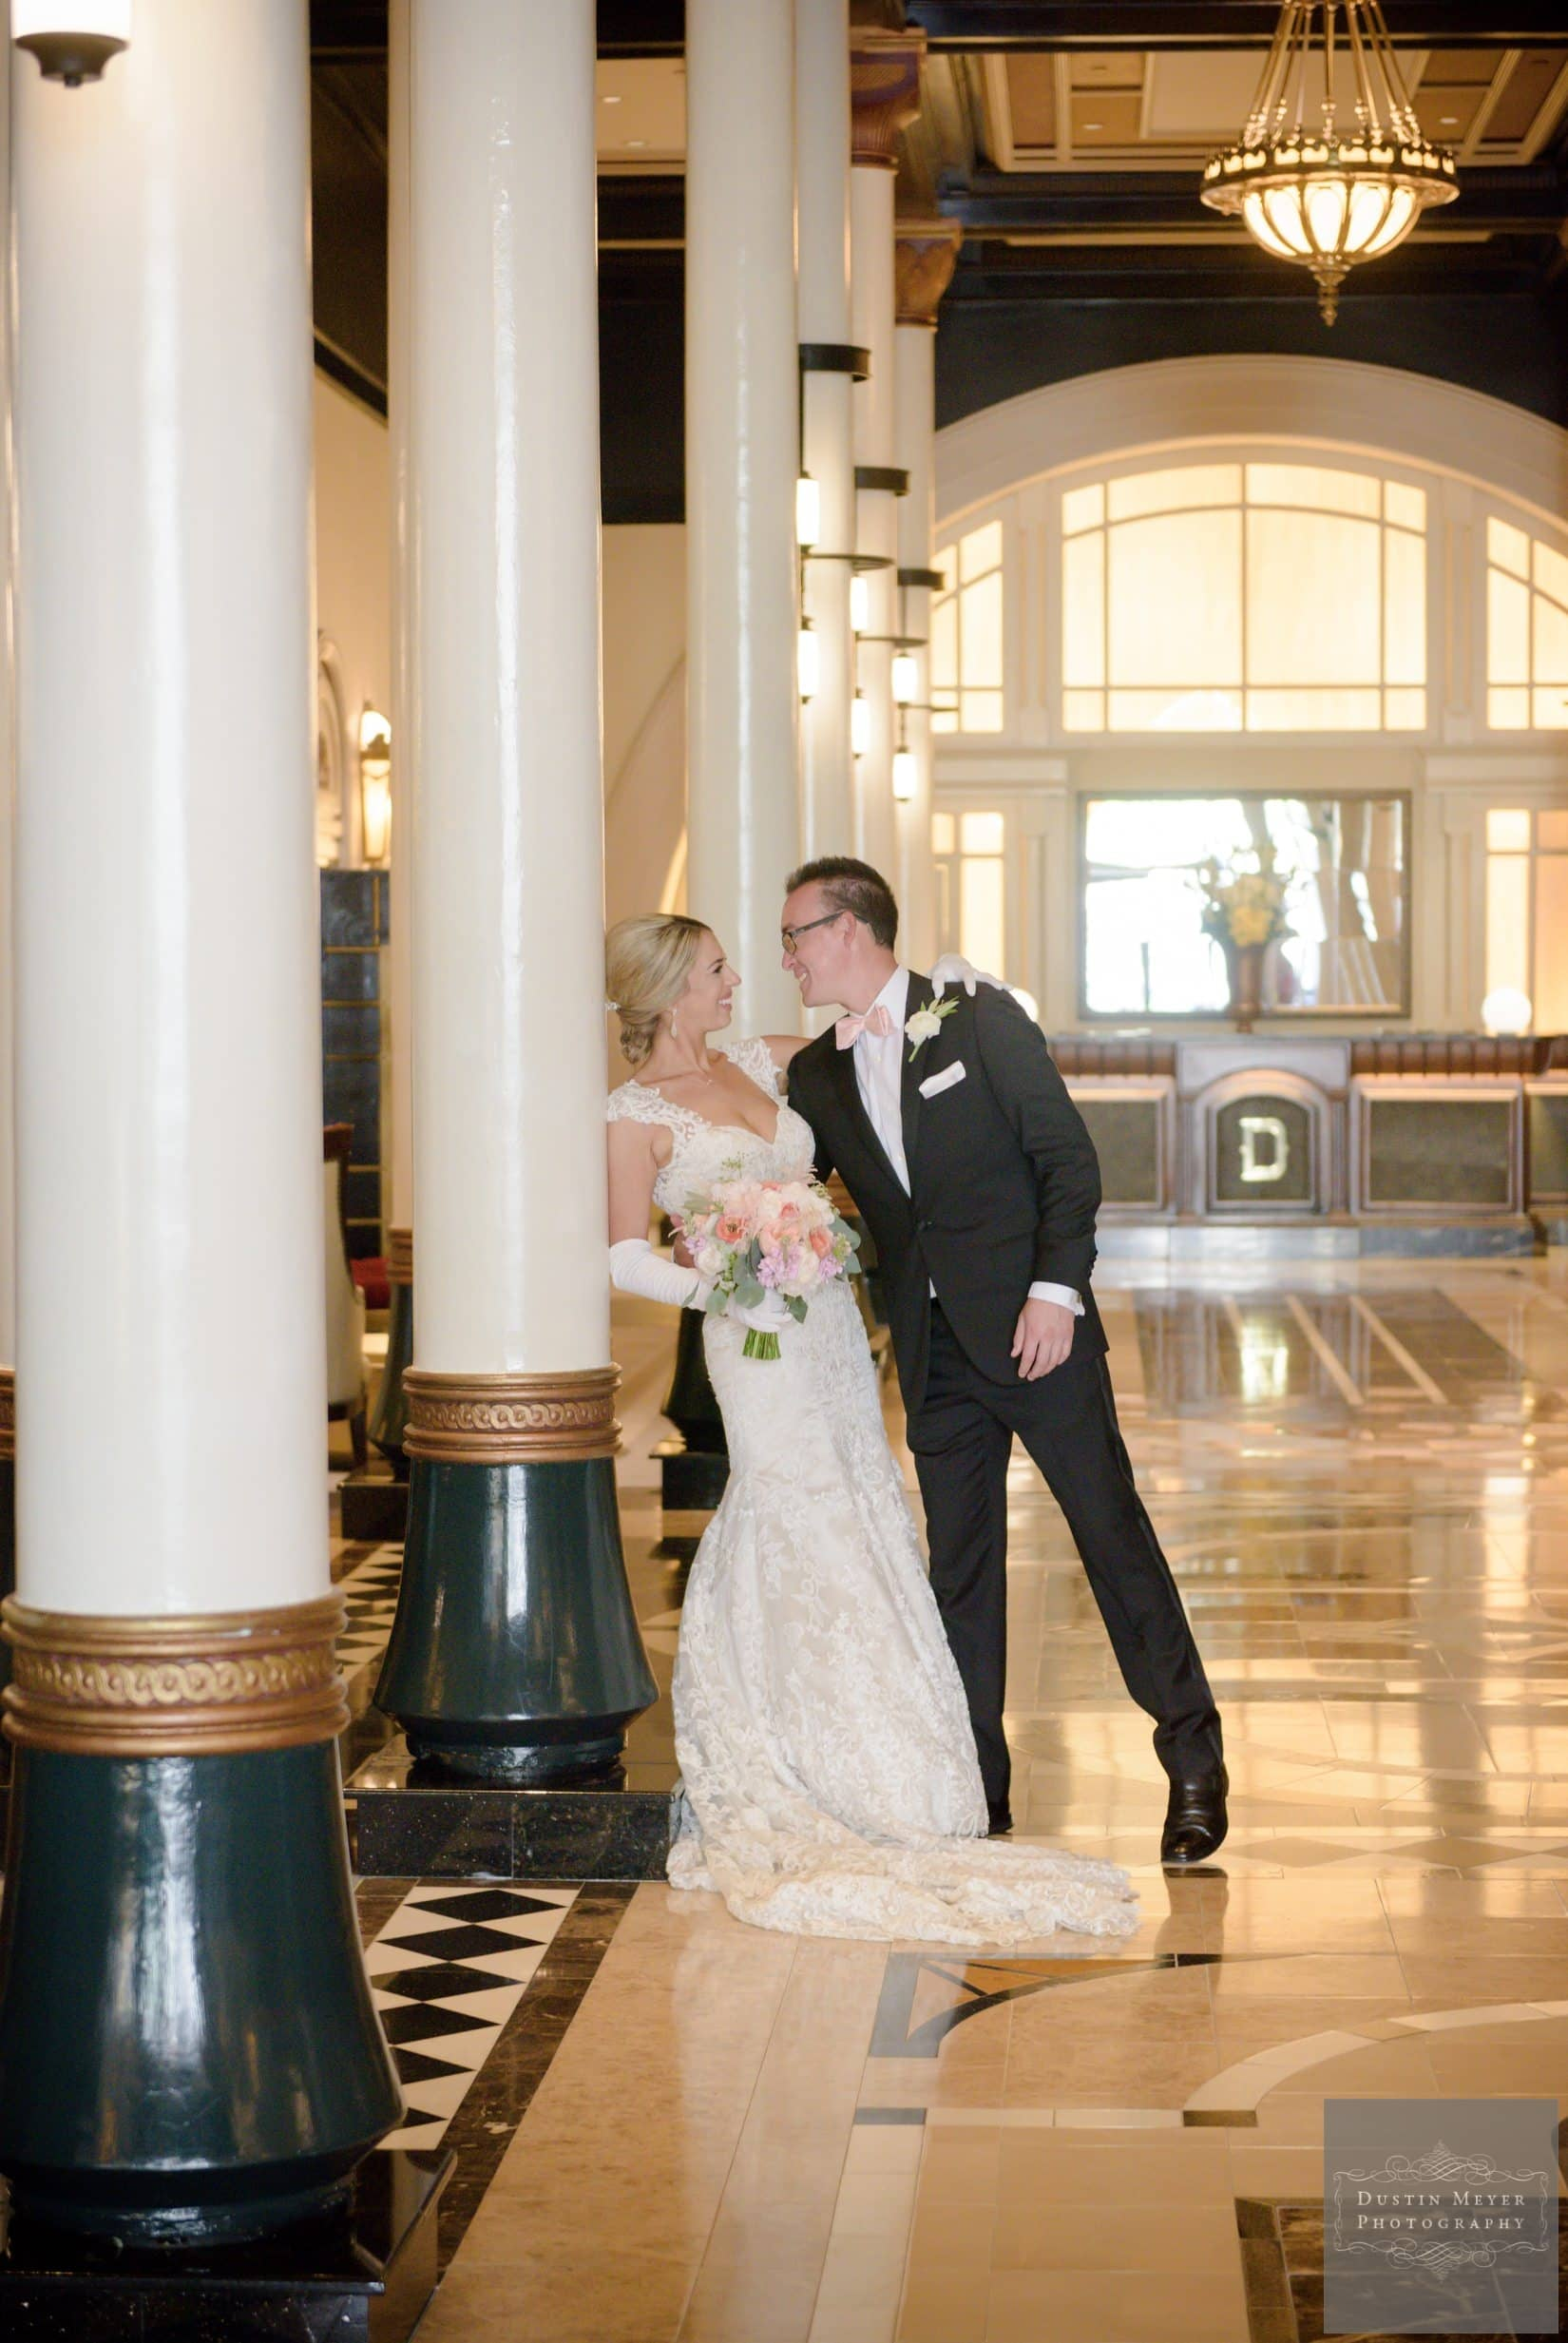 four seasons wedding, first look wedding photos of the bride and groom at the Driskill Hotel